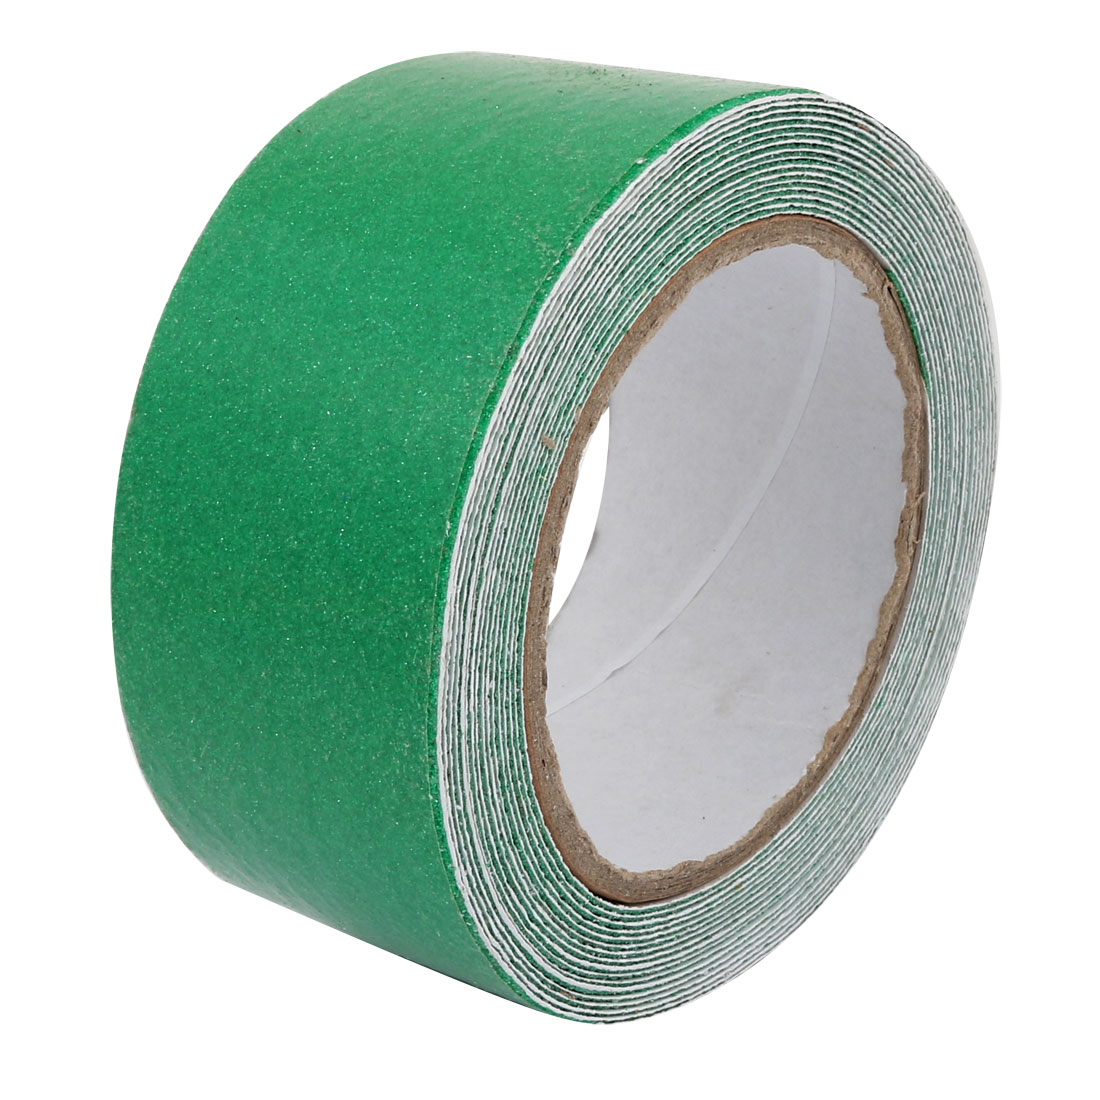 5cm Wide 5 Meters Long Adhesive Grit Anti Slip Tape Green for Stairs Floor